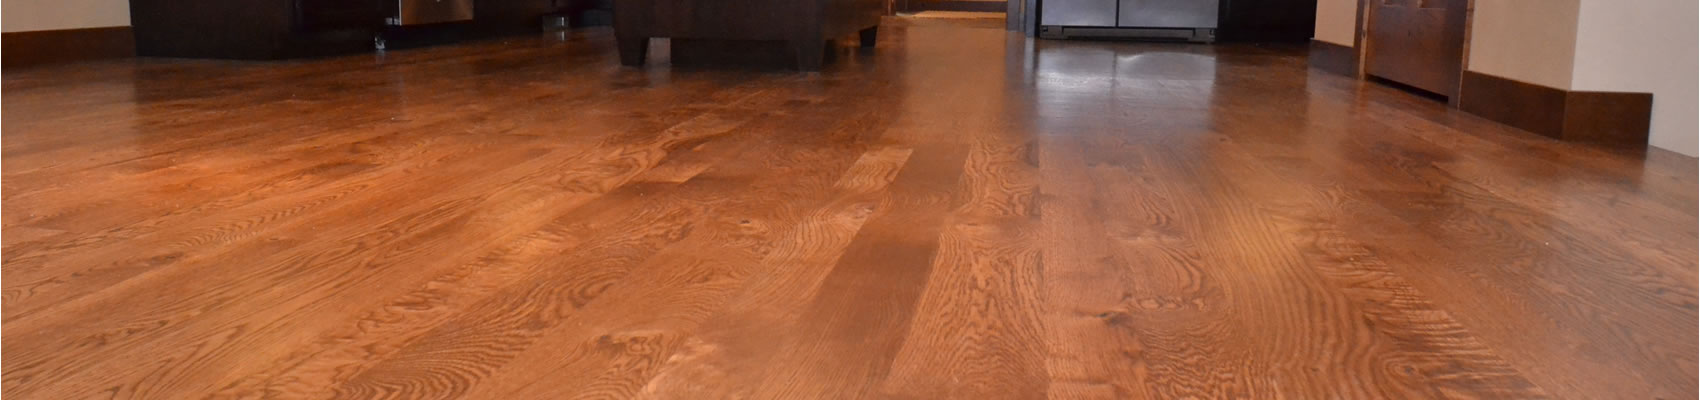 Specialty Flooring Commercial